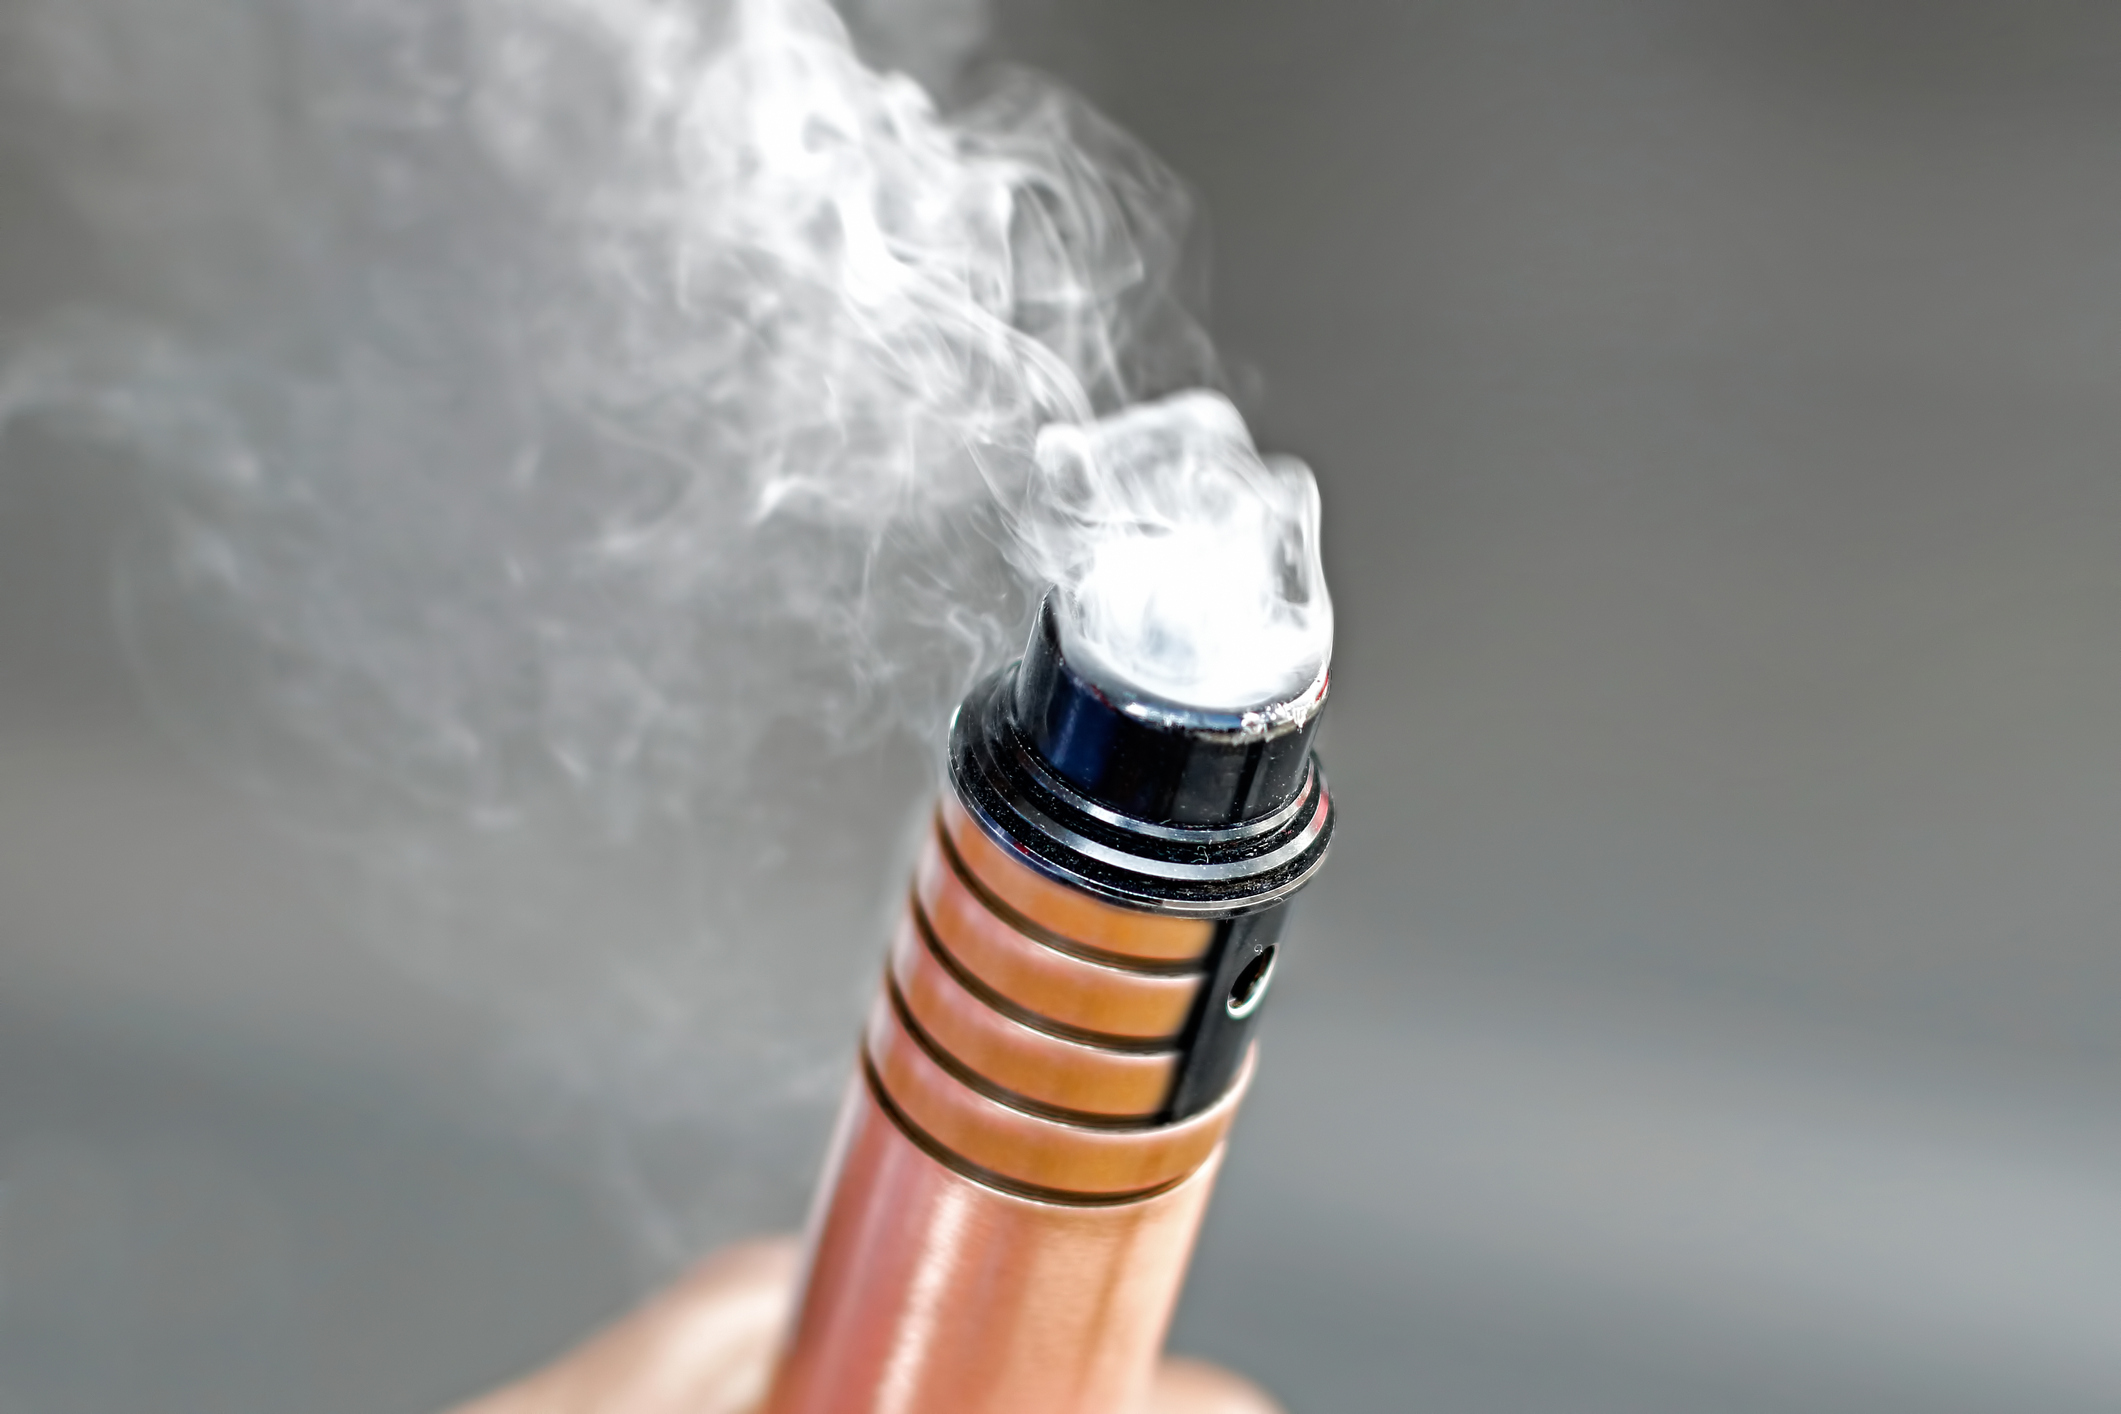 Putting Down E-cigarettes